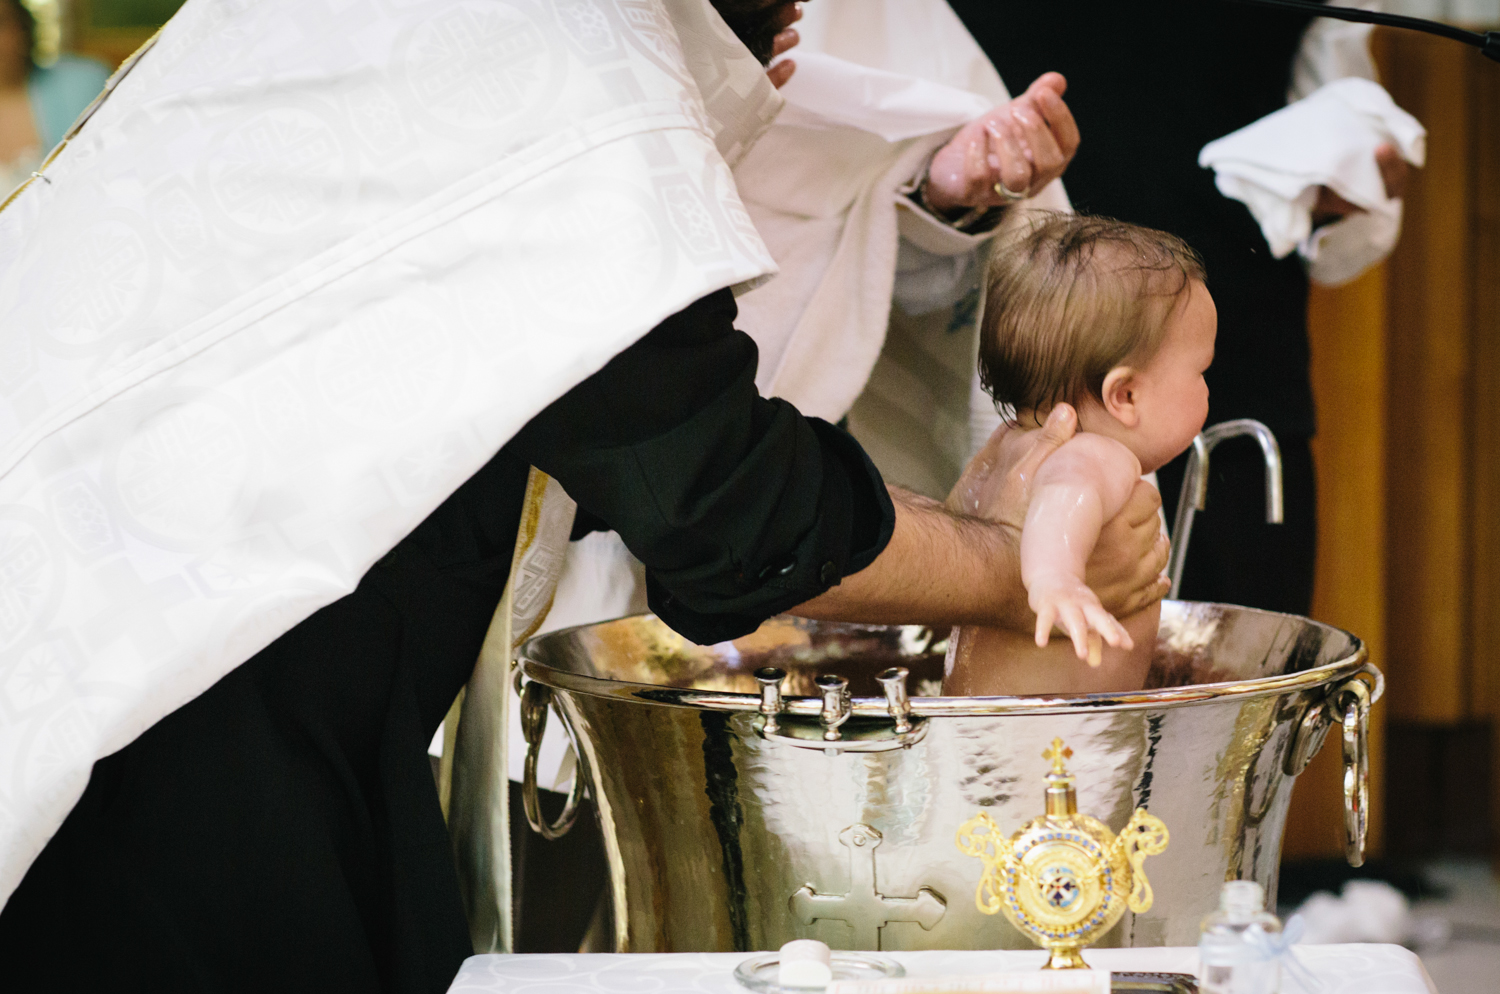 sheridan_nilsson_christening_greek_orthodox_belmore.037.jpeg